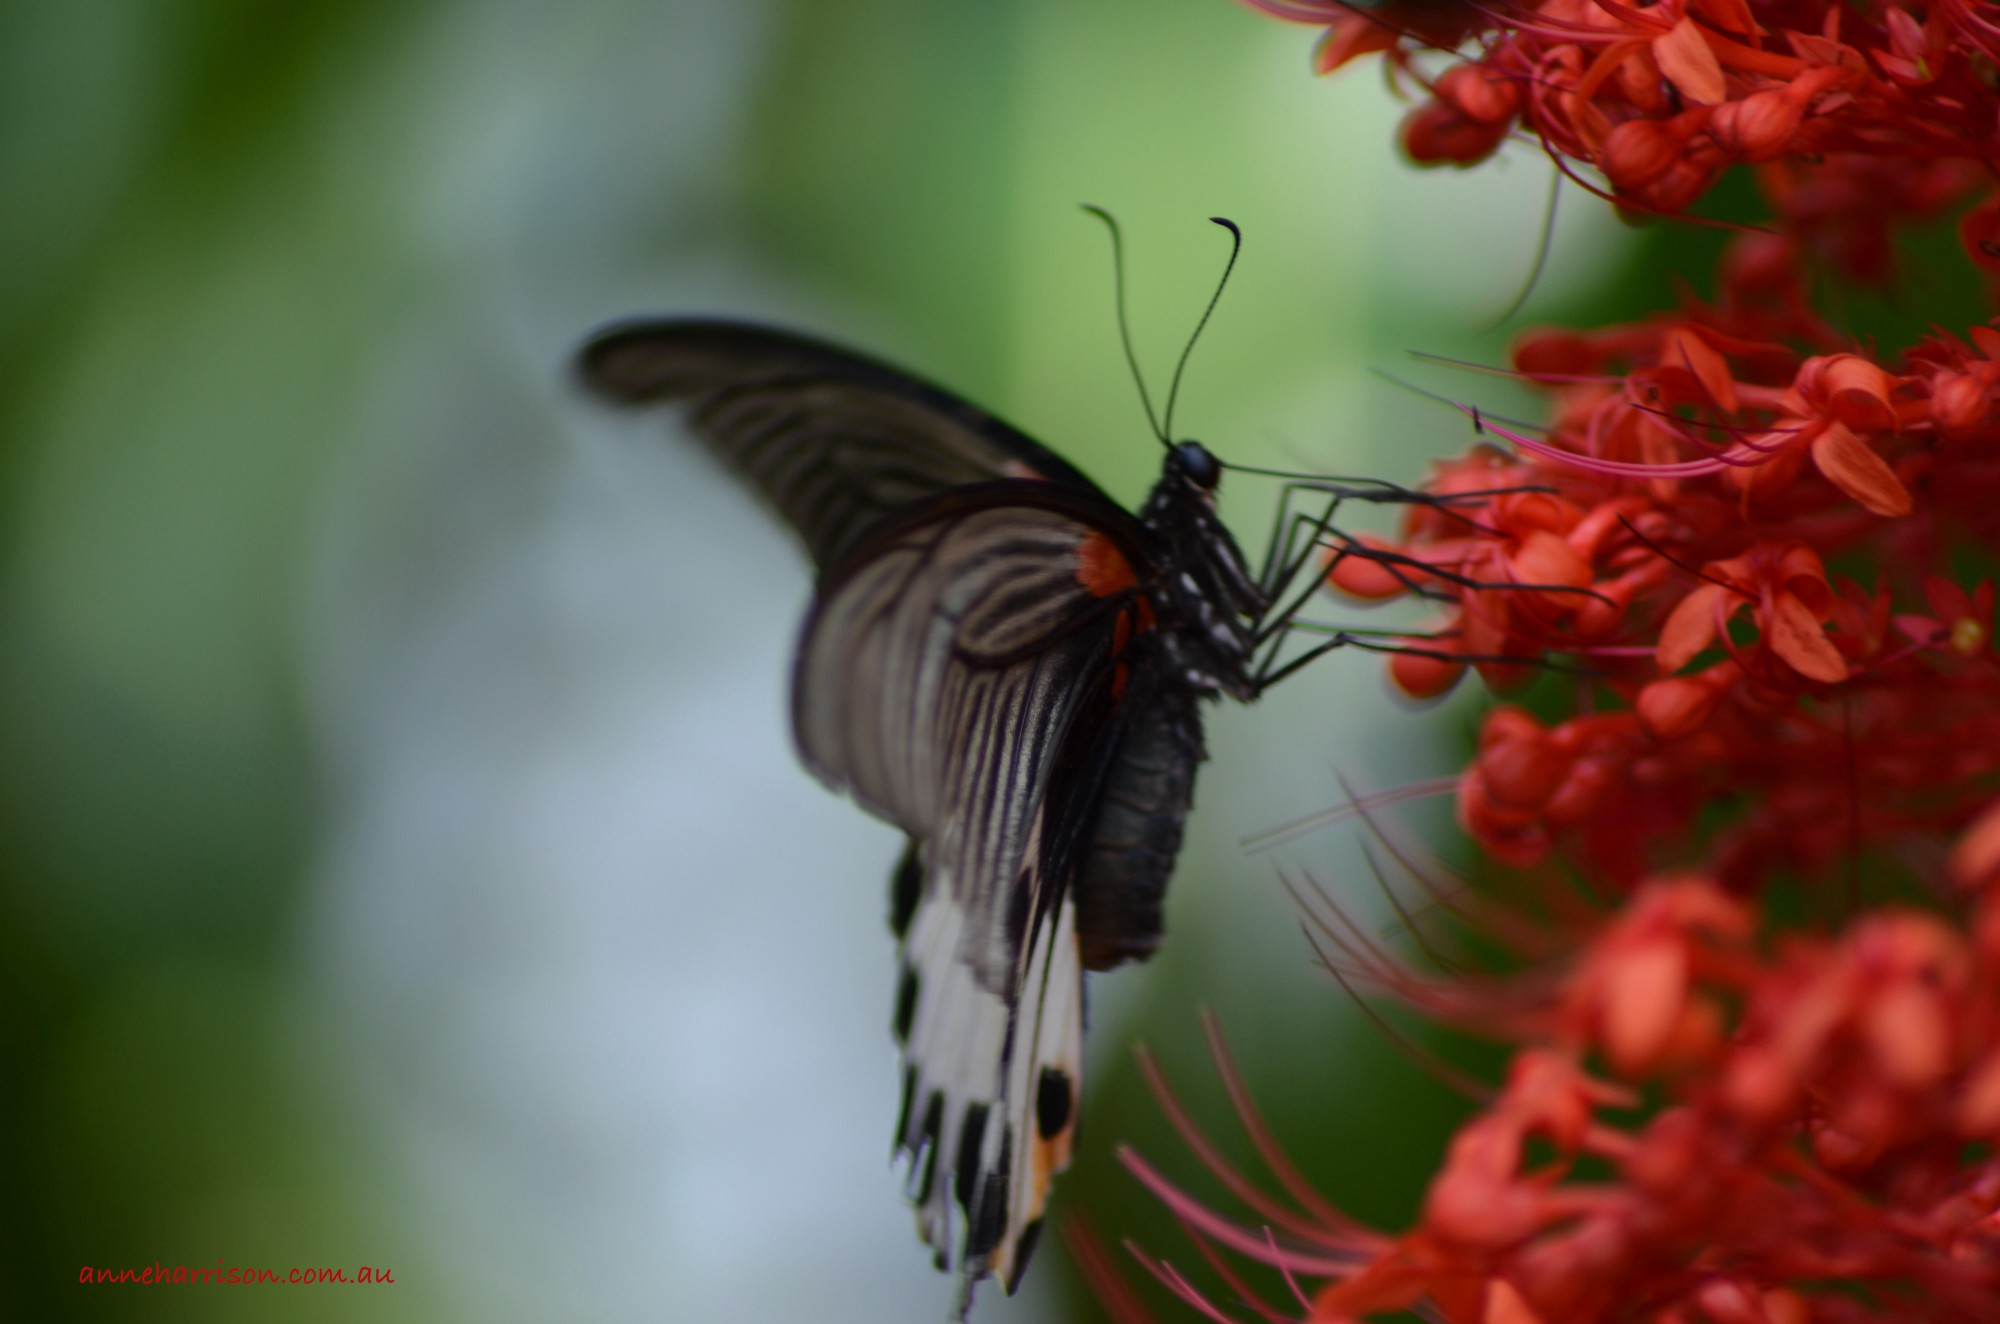 A black and white butterfly on a red flower